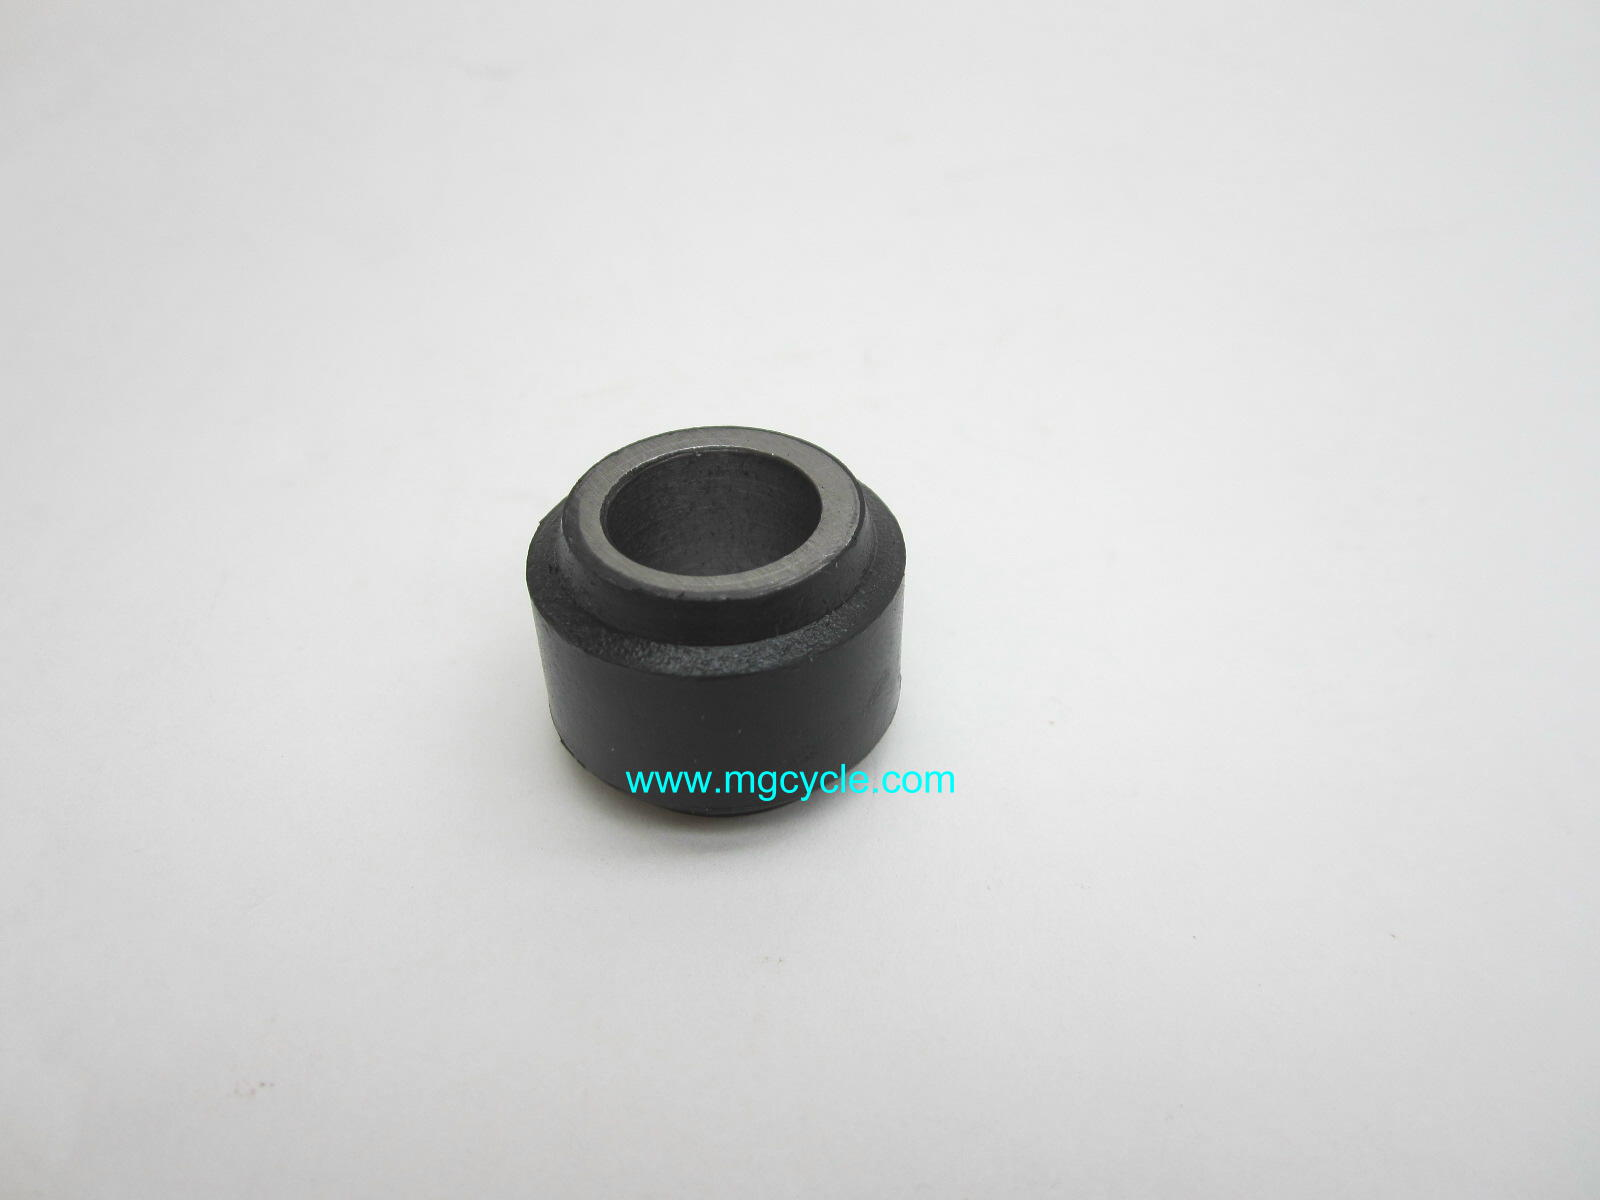 7610 shock bushings 14.1 x 26 x 20mm